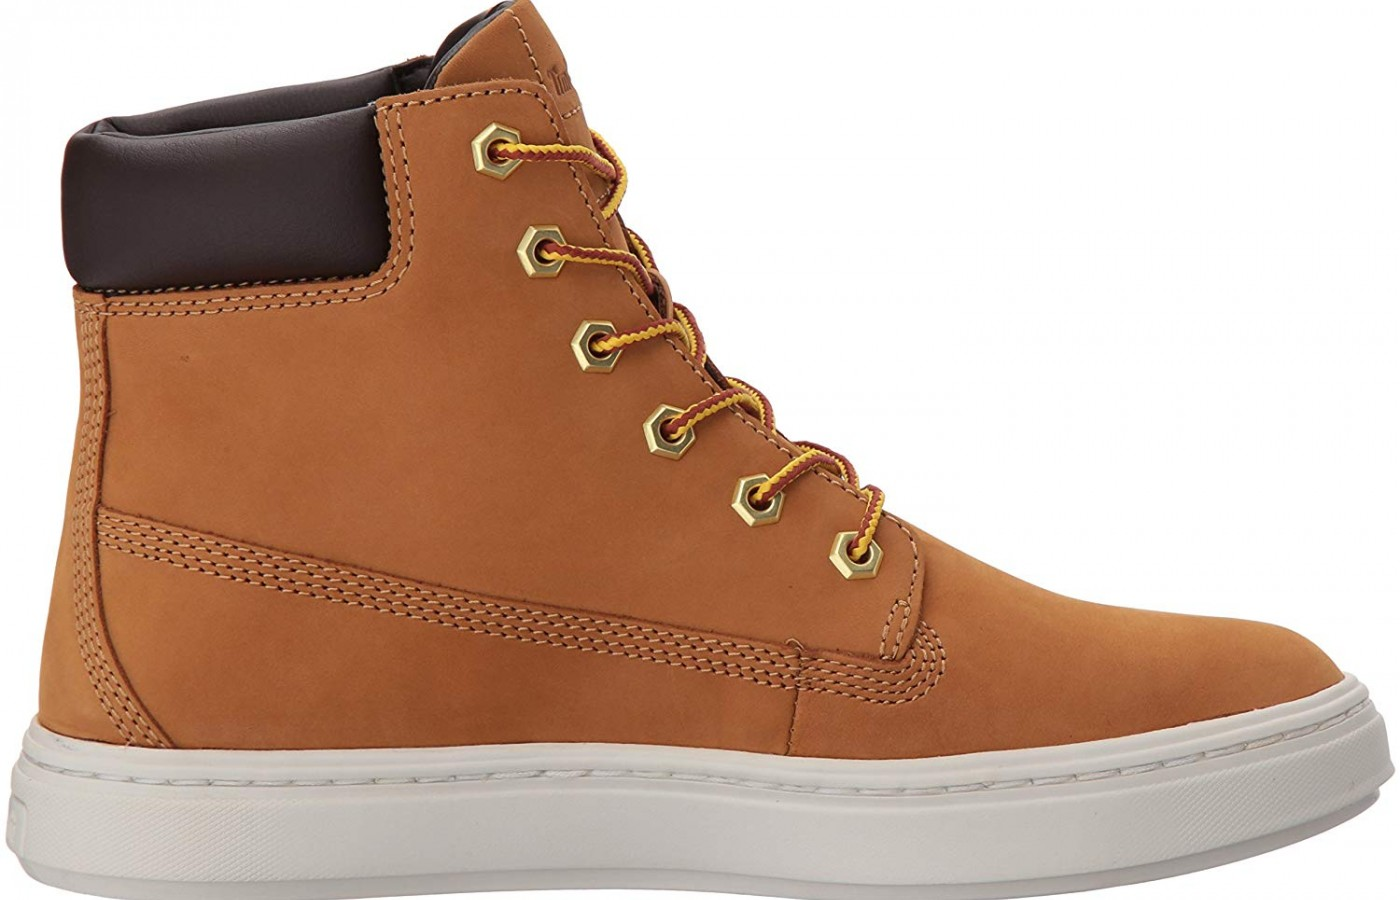 Timberland Dausette Review